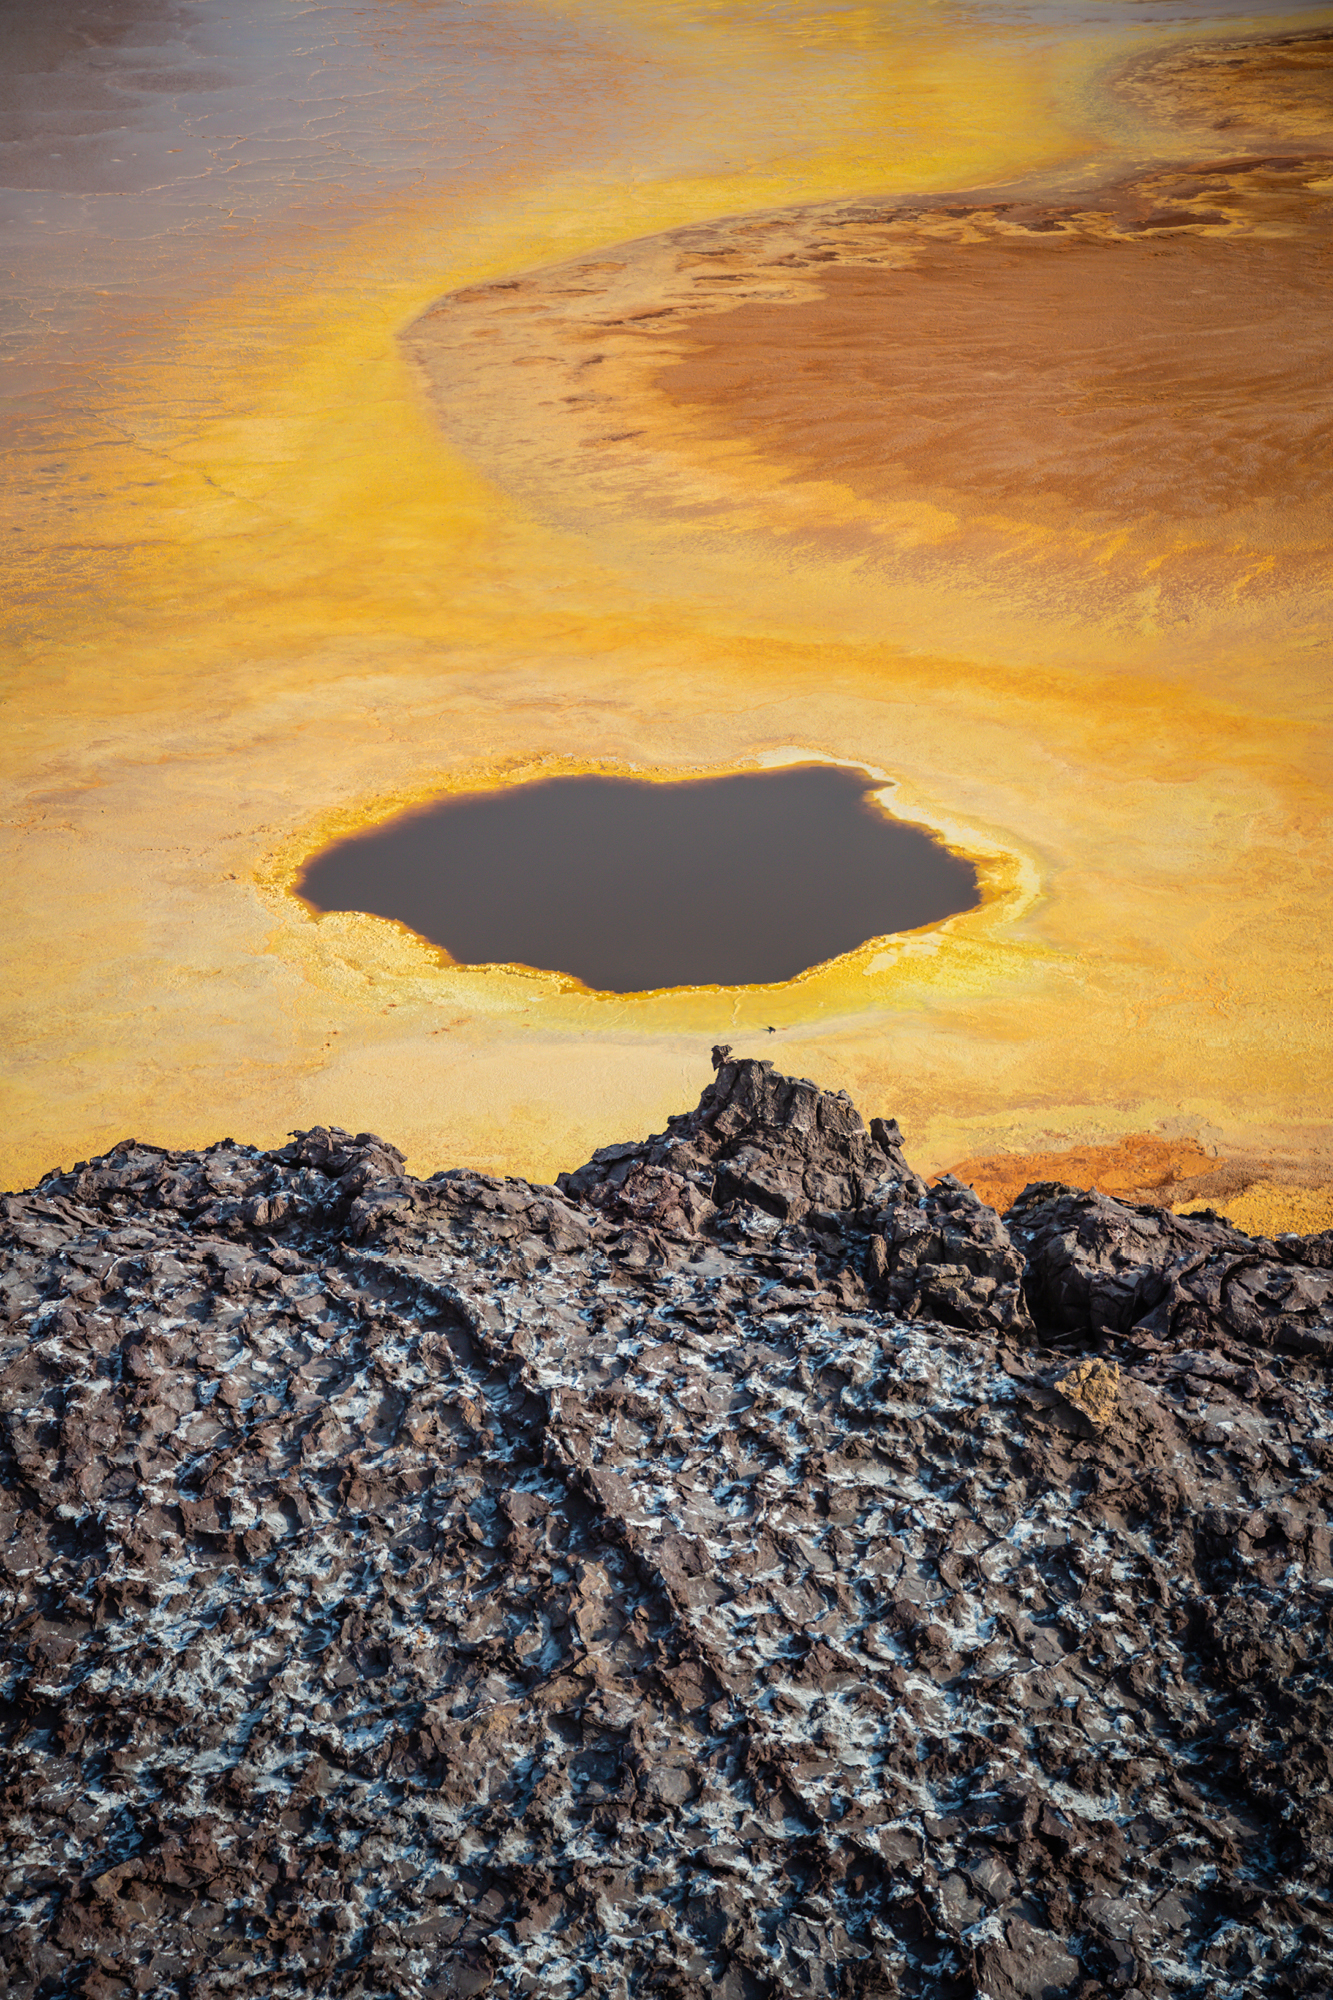 The otherworldly Danakil Depression is the hottest place on Earth